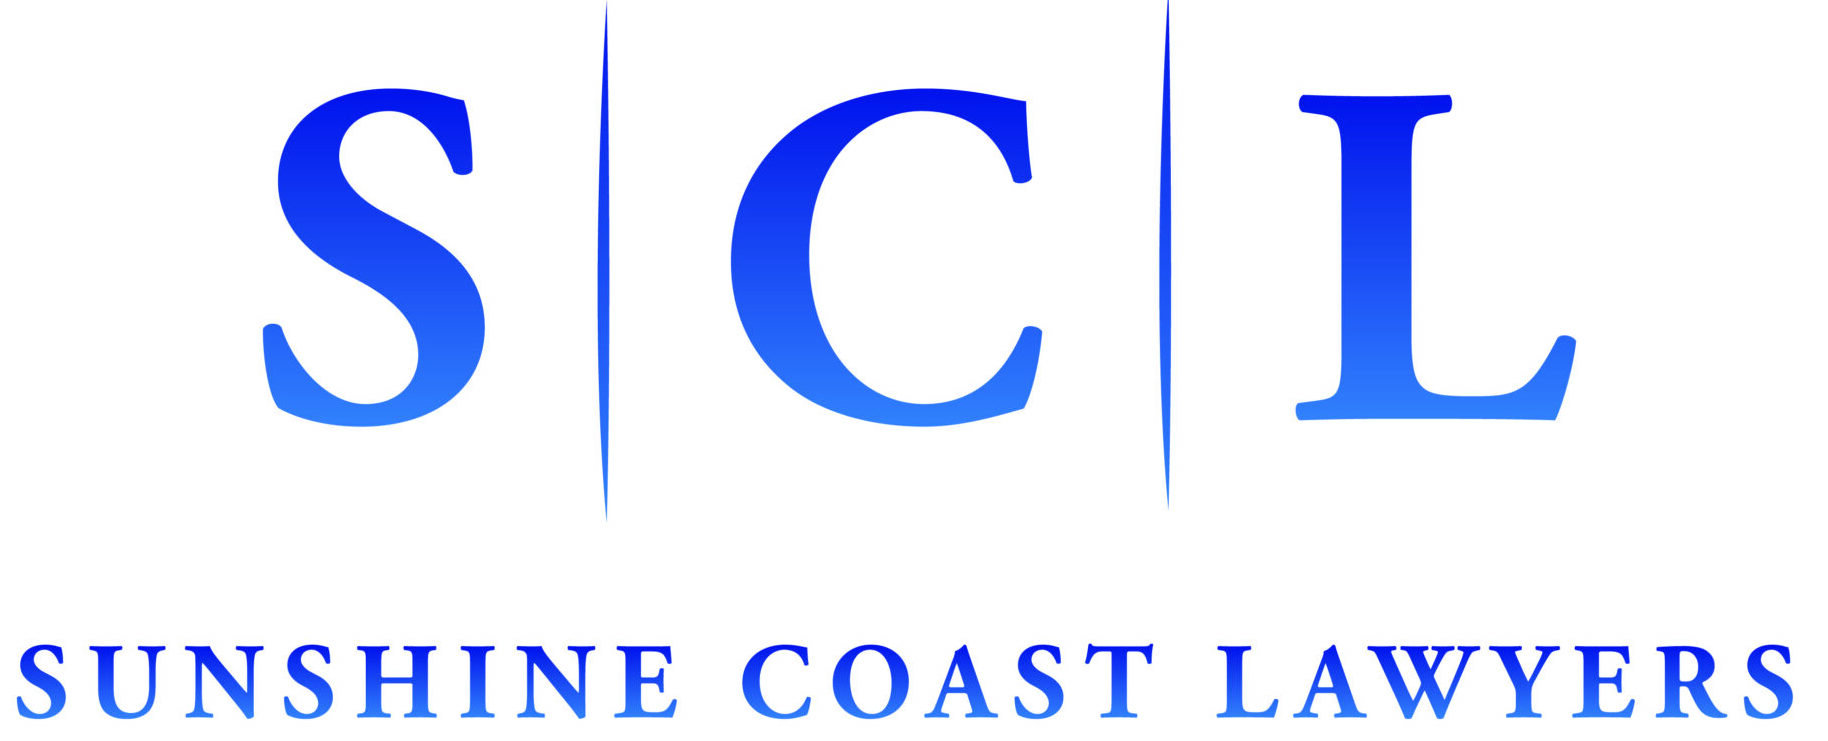 Sunshine Coast Lawyers